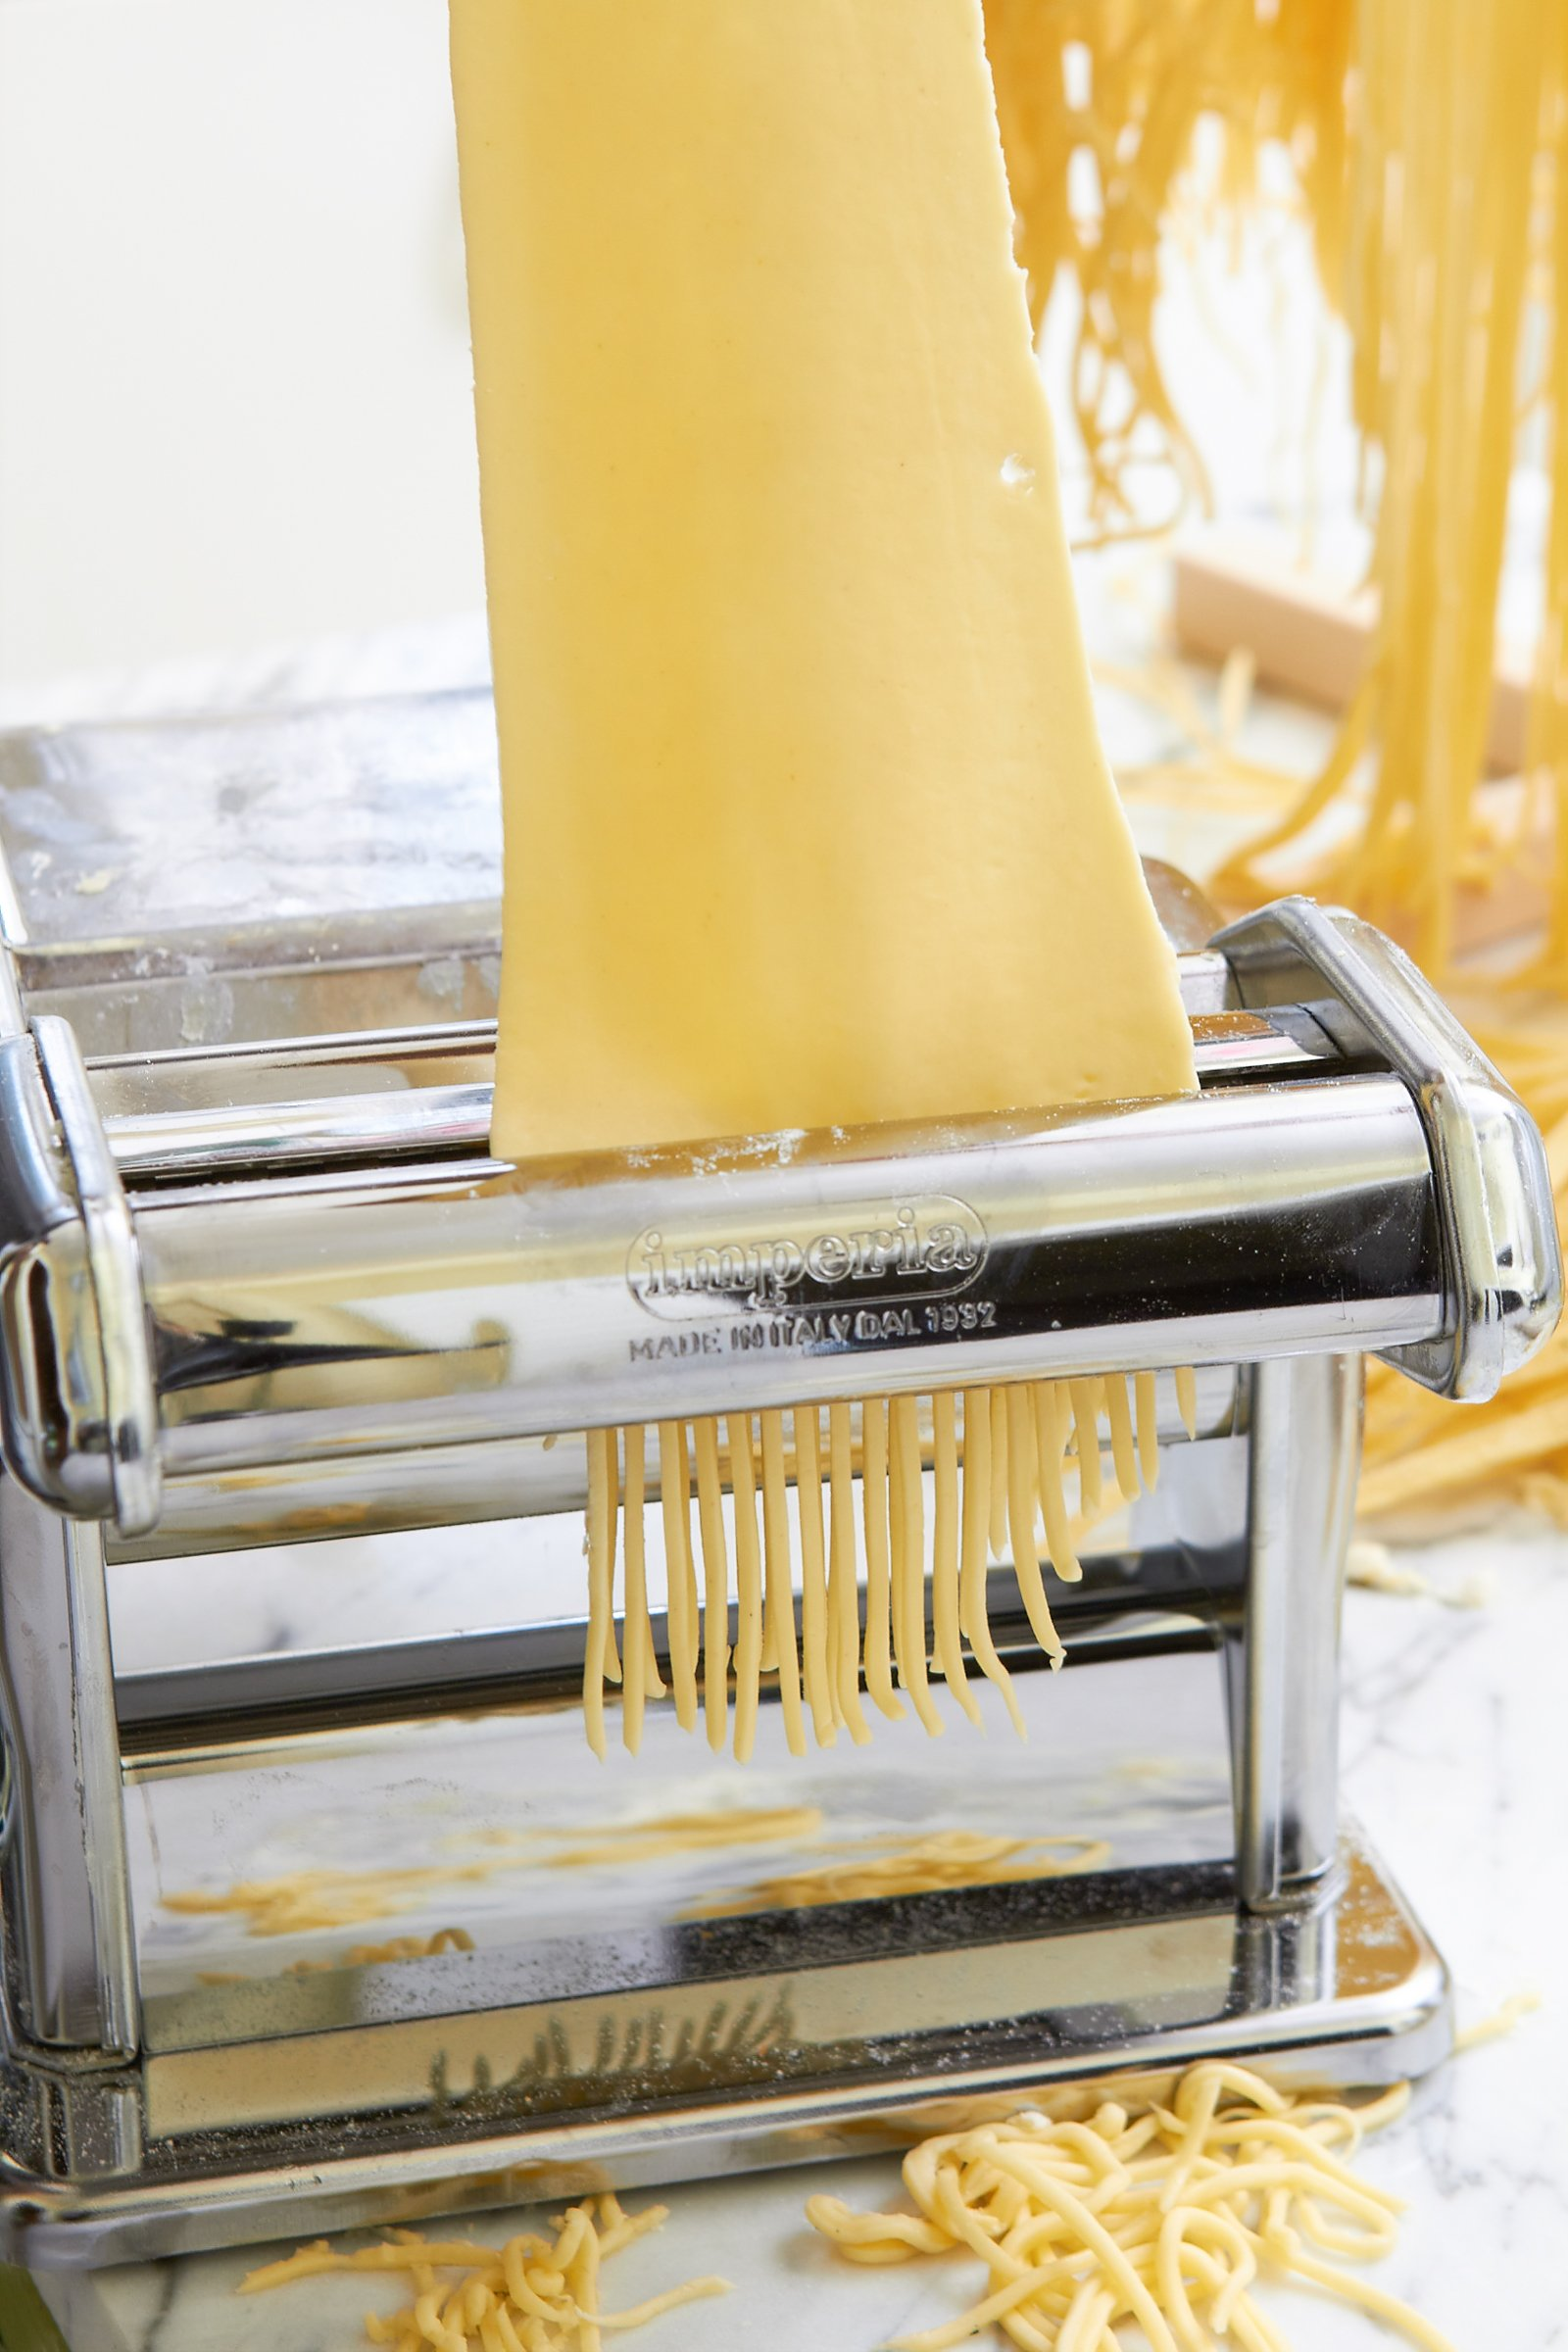 Pasta Machine image